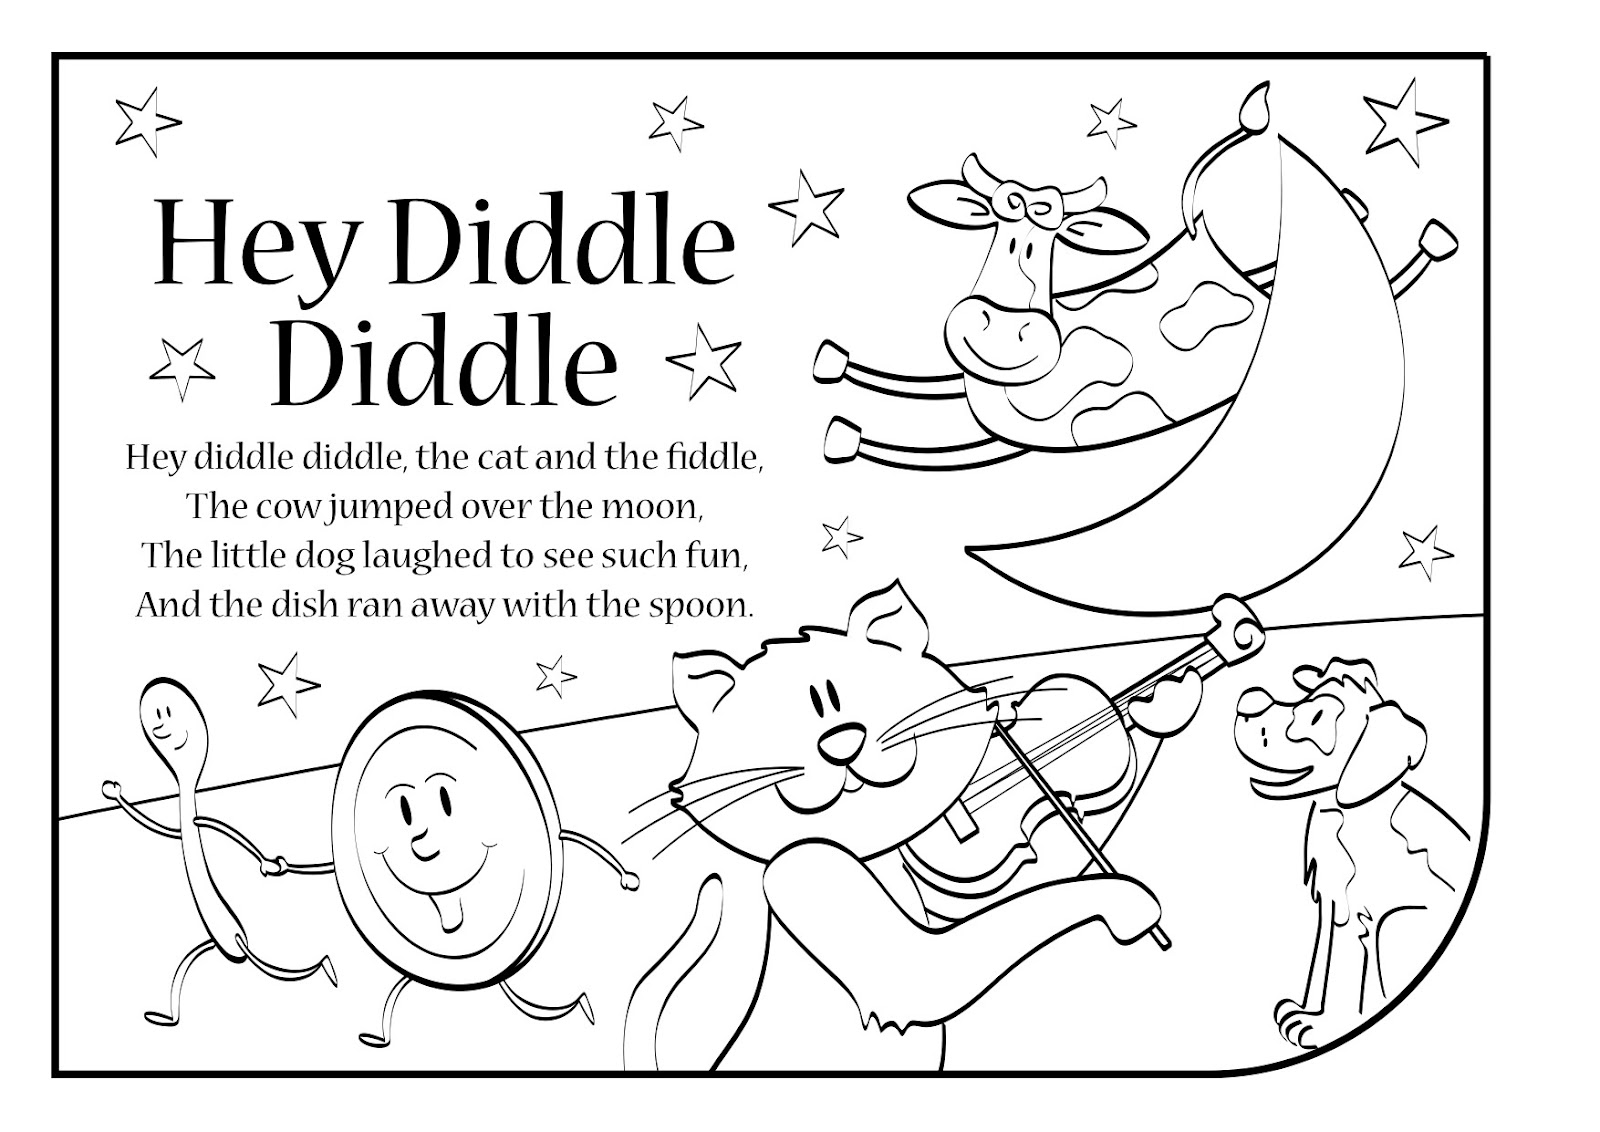 hey diddle diddle coloring page hey diddle diddle coloring page coloring pages for kids coloring page diddle hey diddle